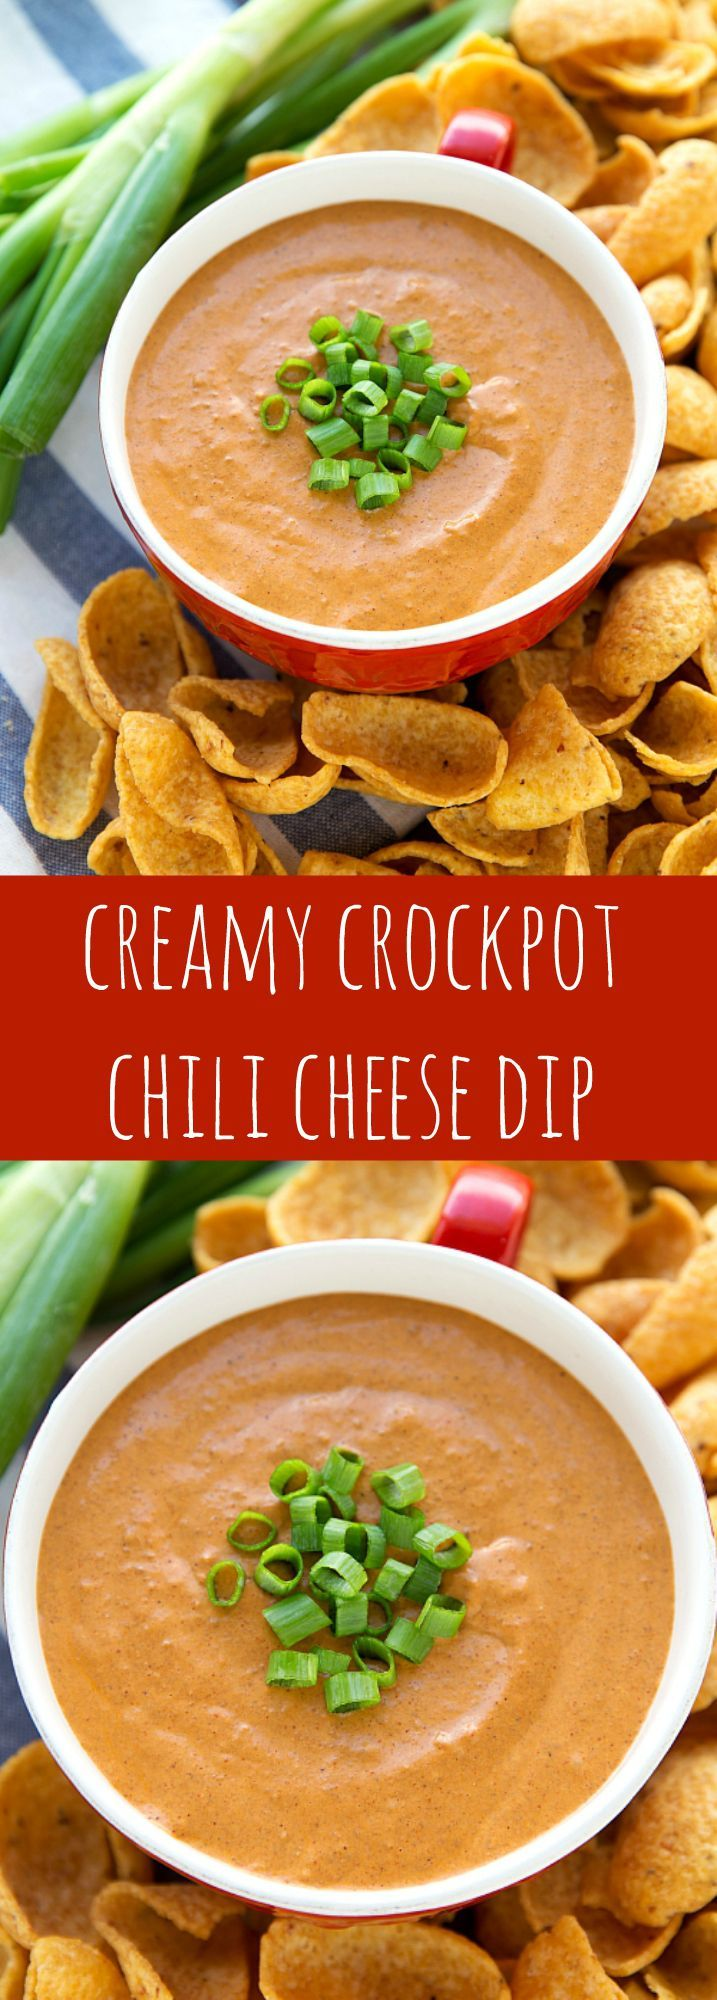 Easy Crockpot Chili Cream Cheese Dip (NO Velveeta!)